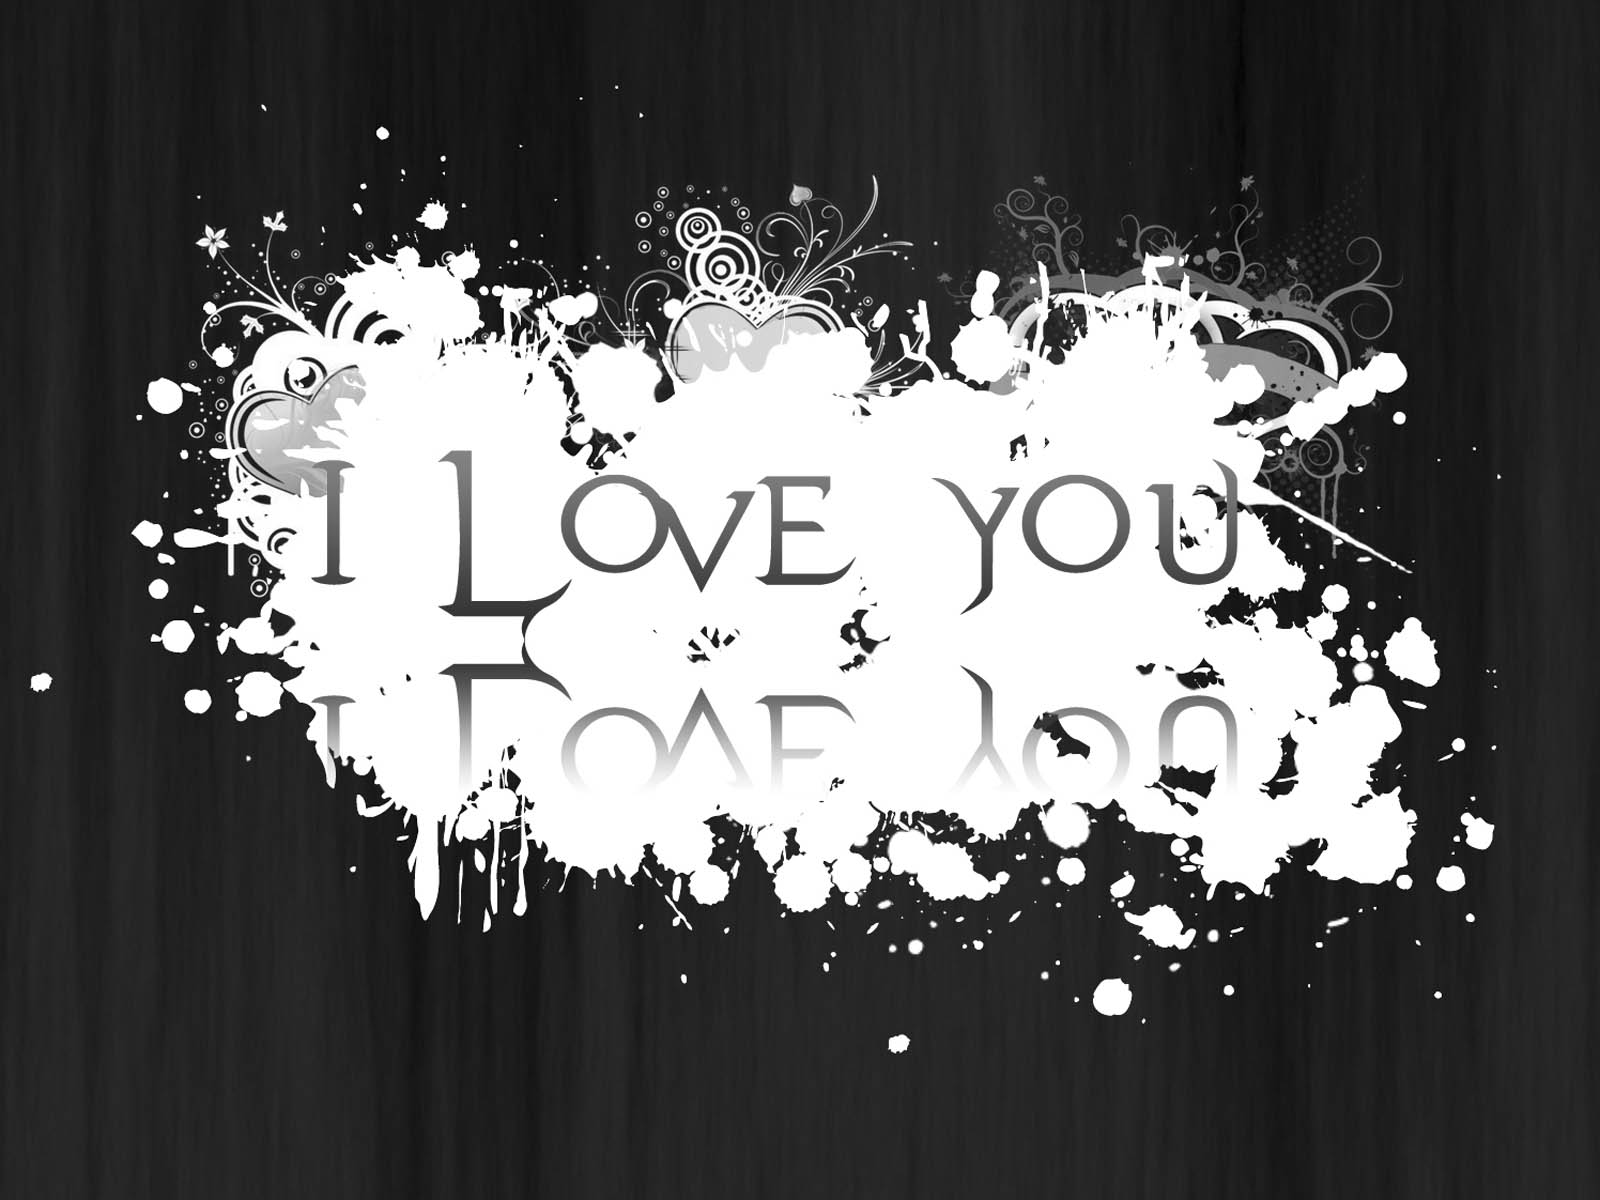 wallpapers: Black and White Love Wallpapers